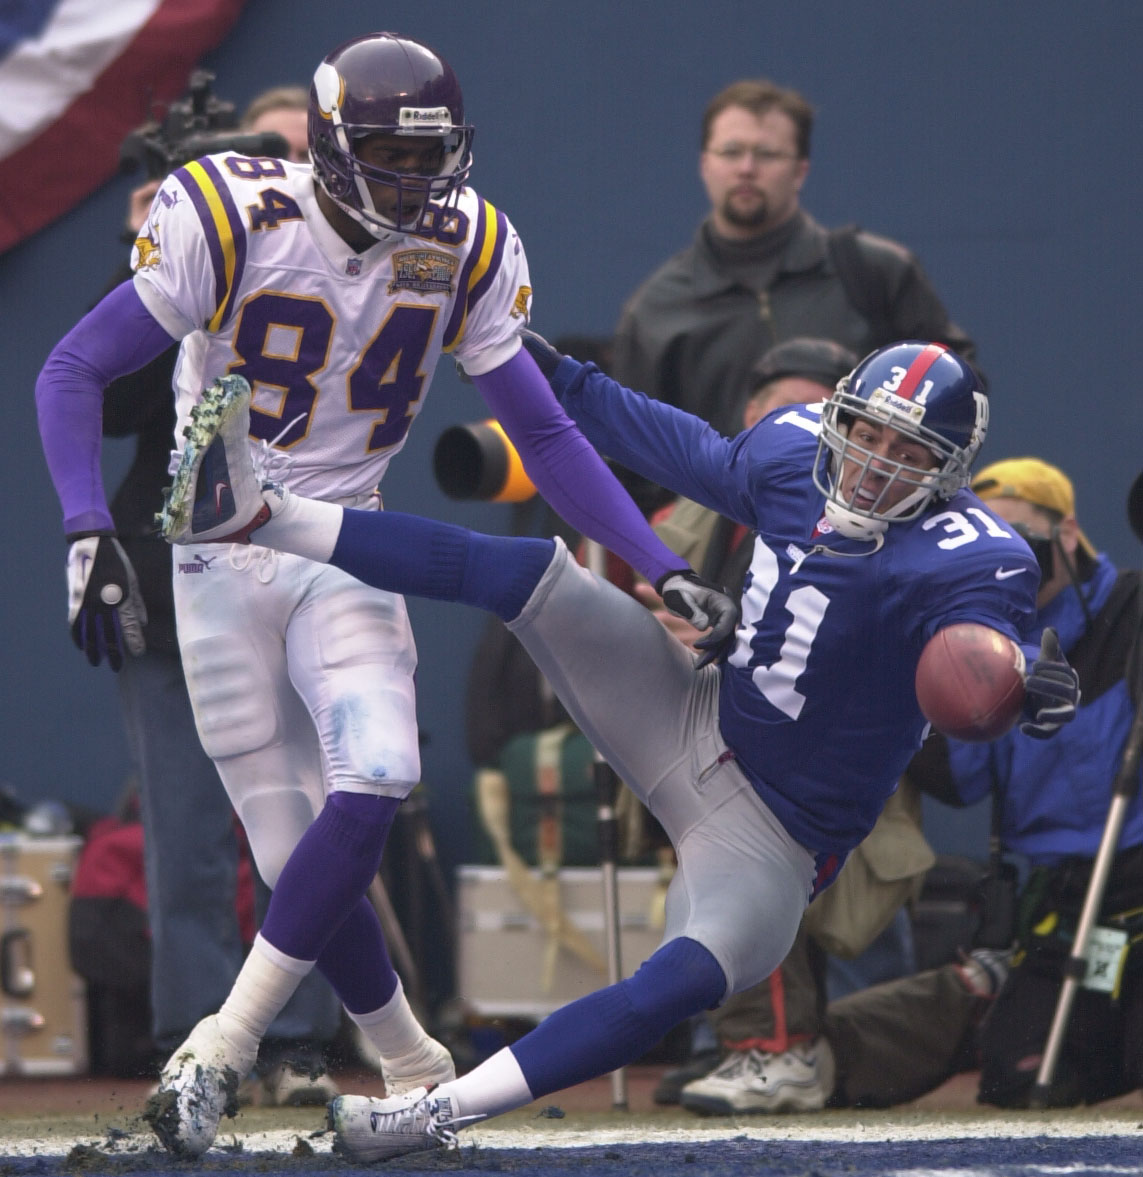 14 Jan 2001:  Jason Sehorn #31 of the New York Giants breaks up a pass intended for Randy Moss #84 of the Minnesota Vikings during the NFC Championship game at Giants Stadium in East Rutherford, New Jersey. New York Giants won 41-0. <Digital File> Mandato